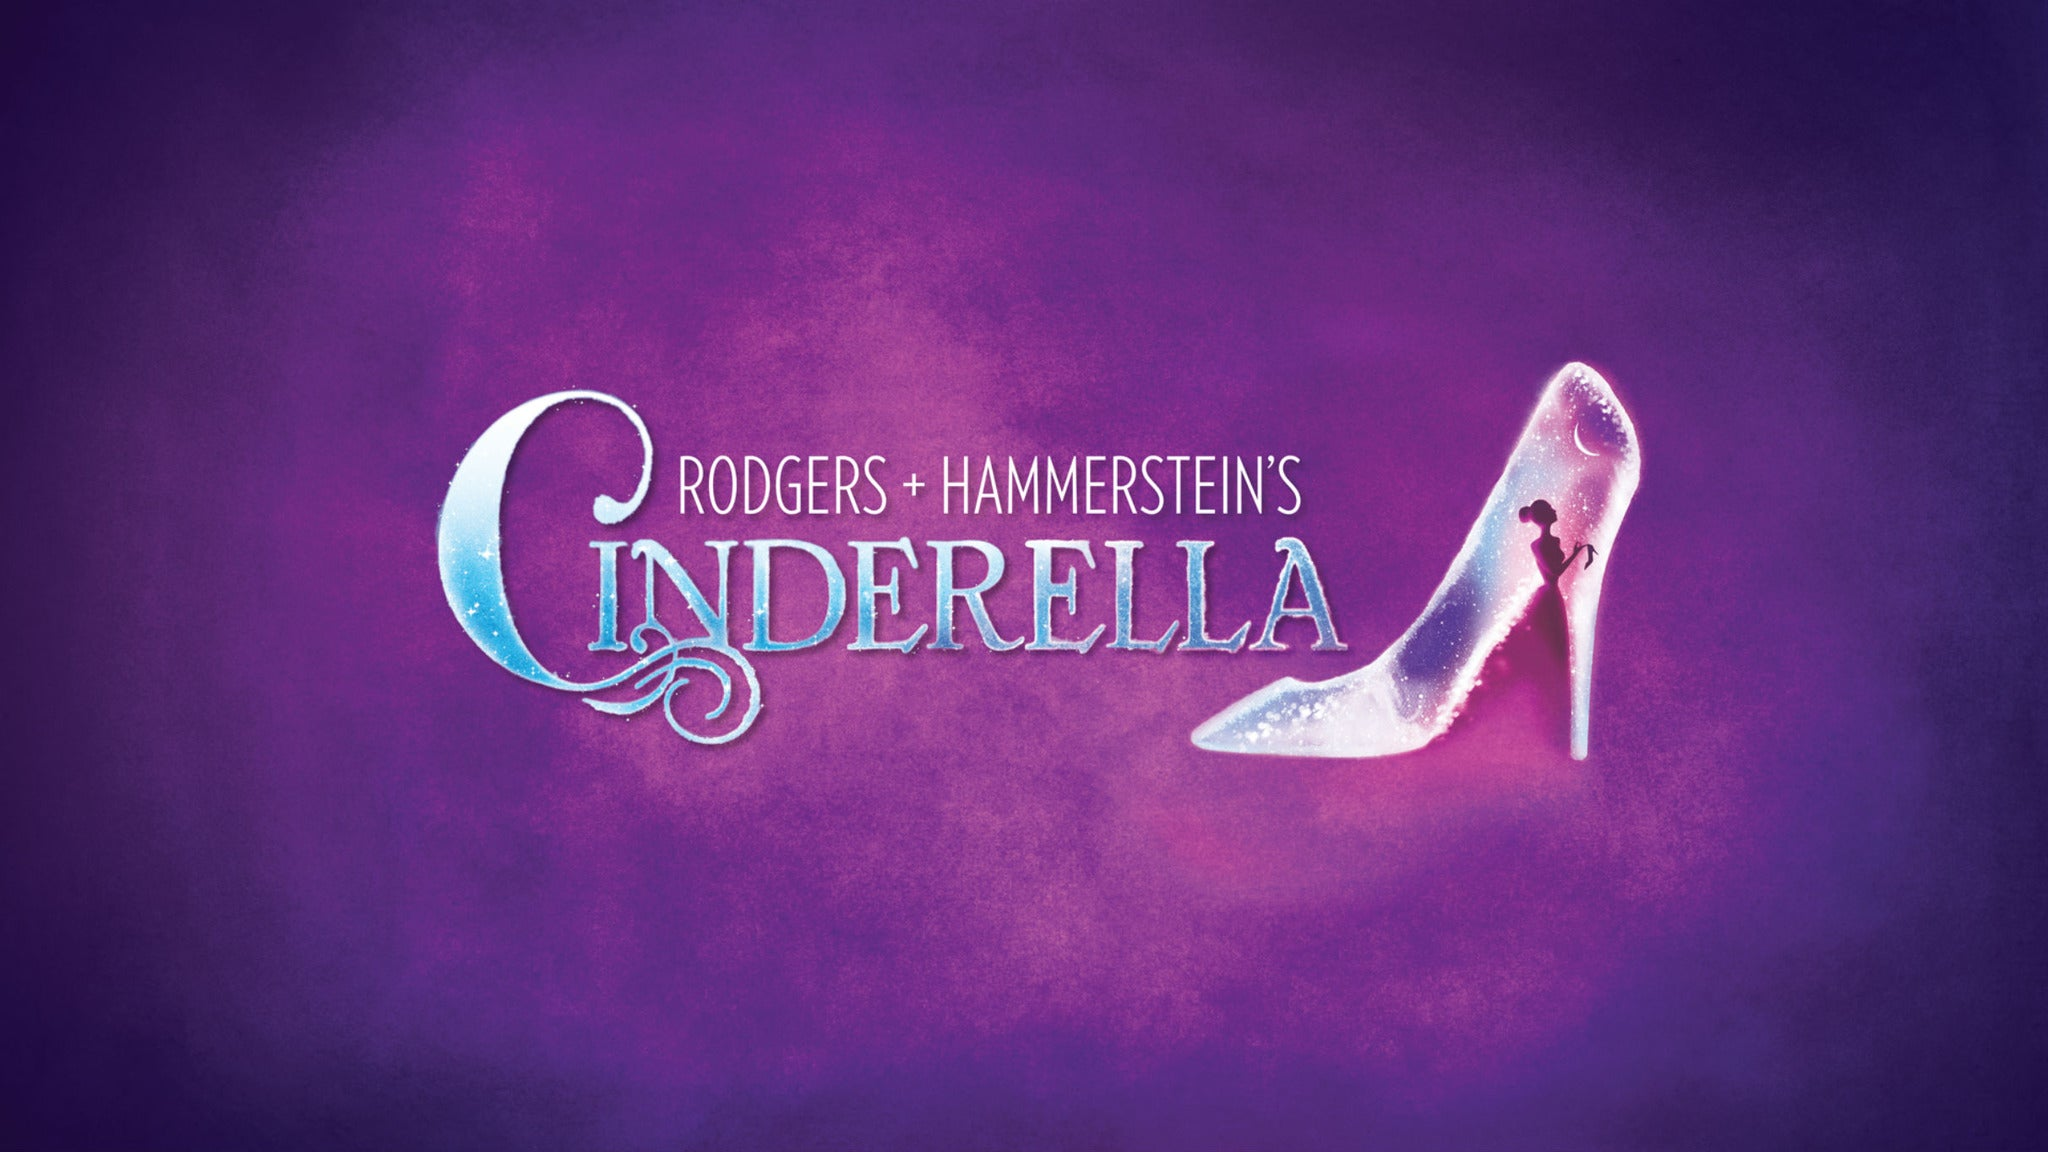 Cinderella-Theater at Ahmanson Theatre - Los Angeles, CA 90012